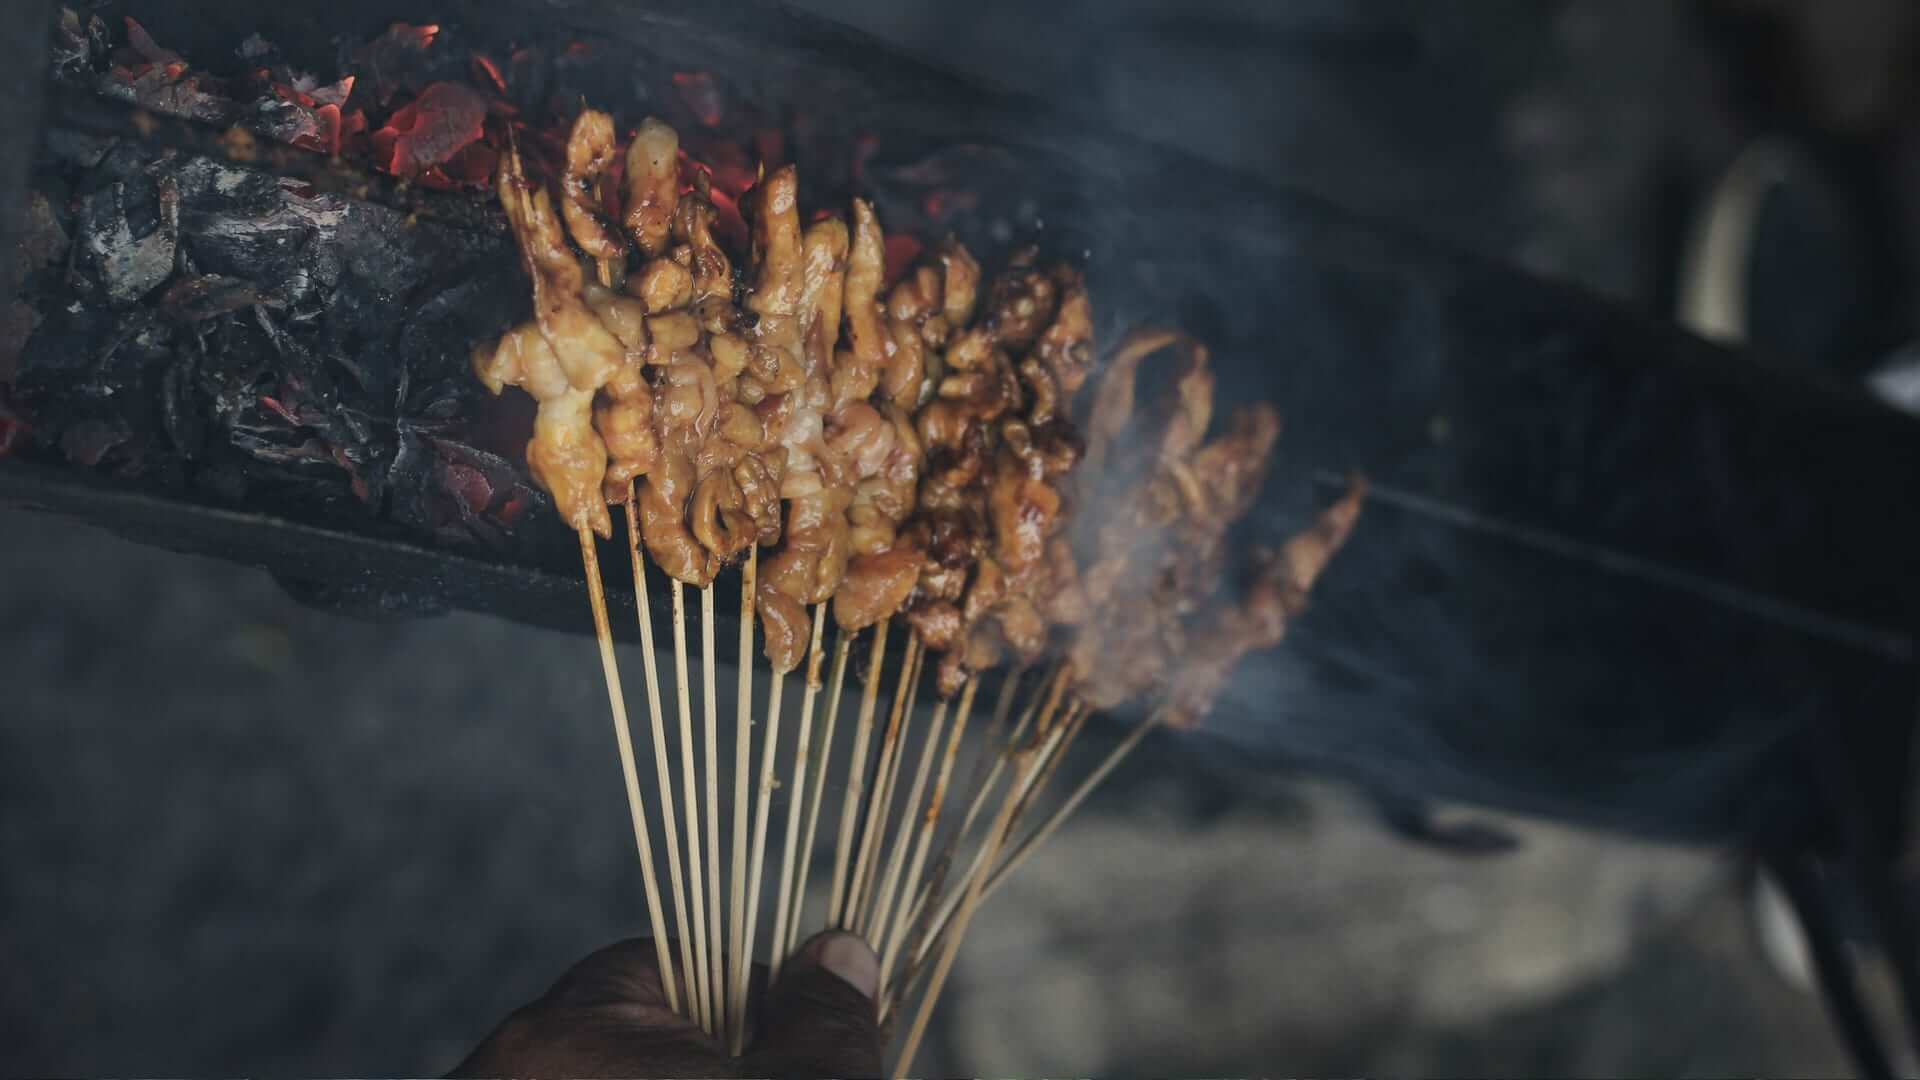 A person is holding sticks of satay on a smoking grill in Bali.